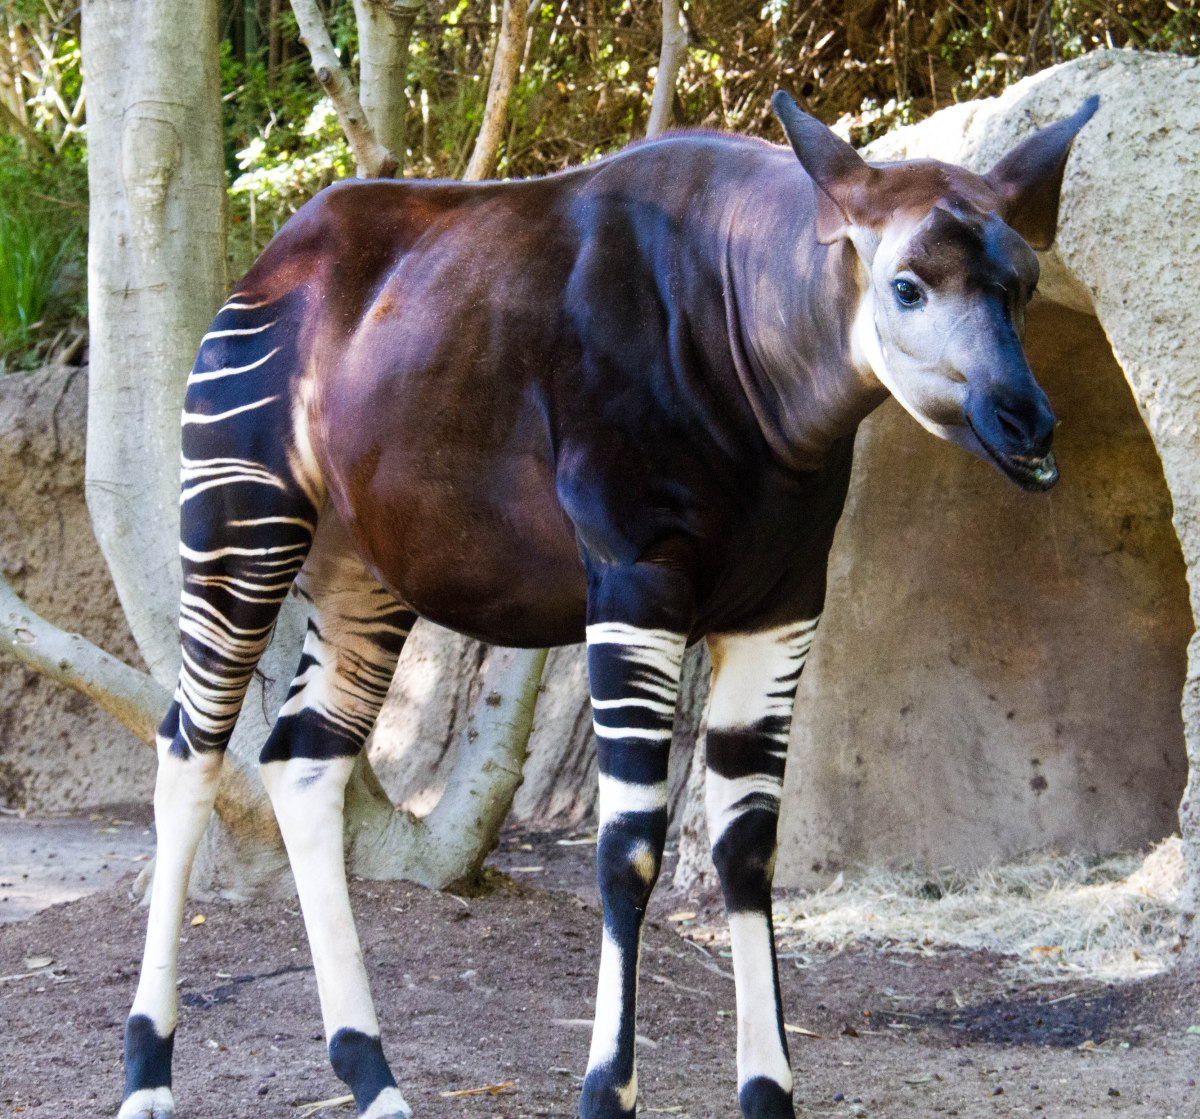 Okapi's are cool!